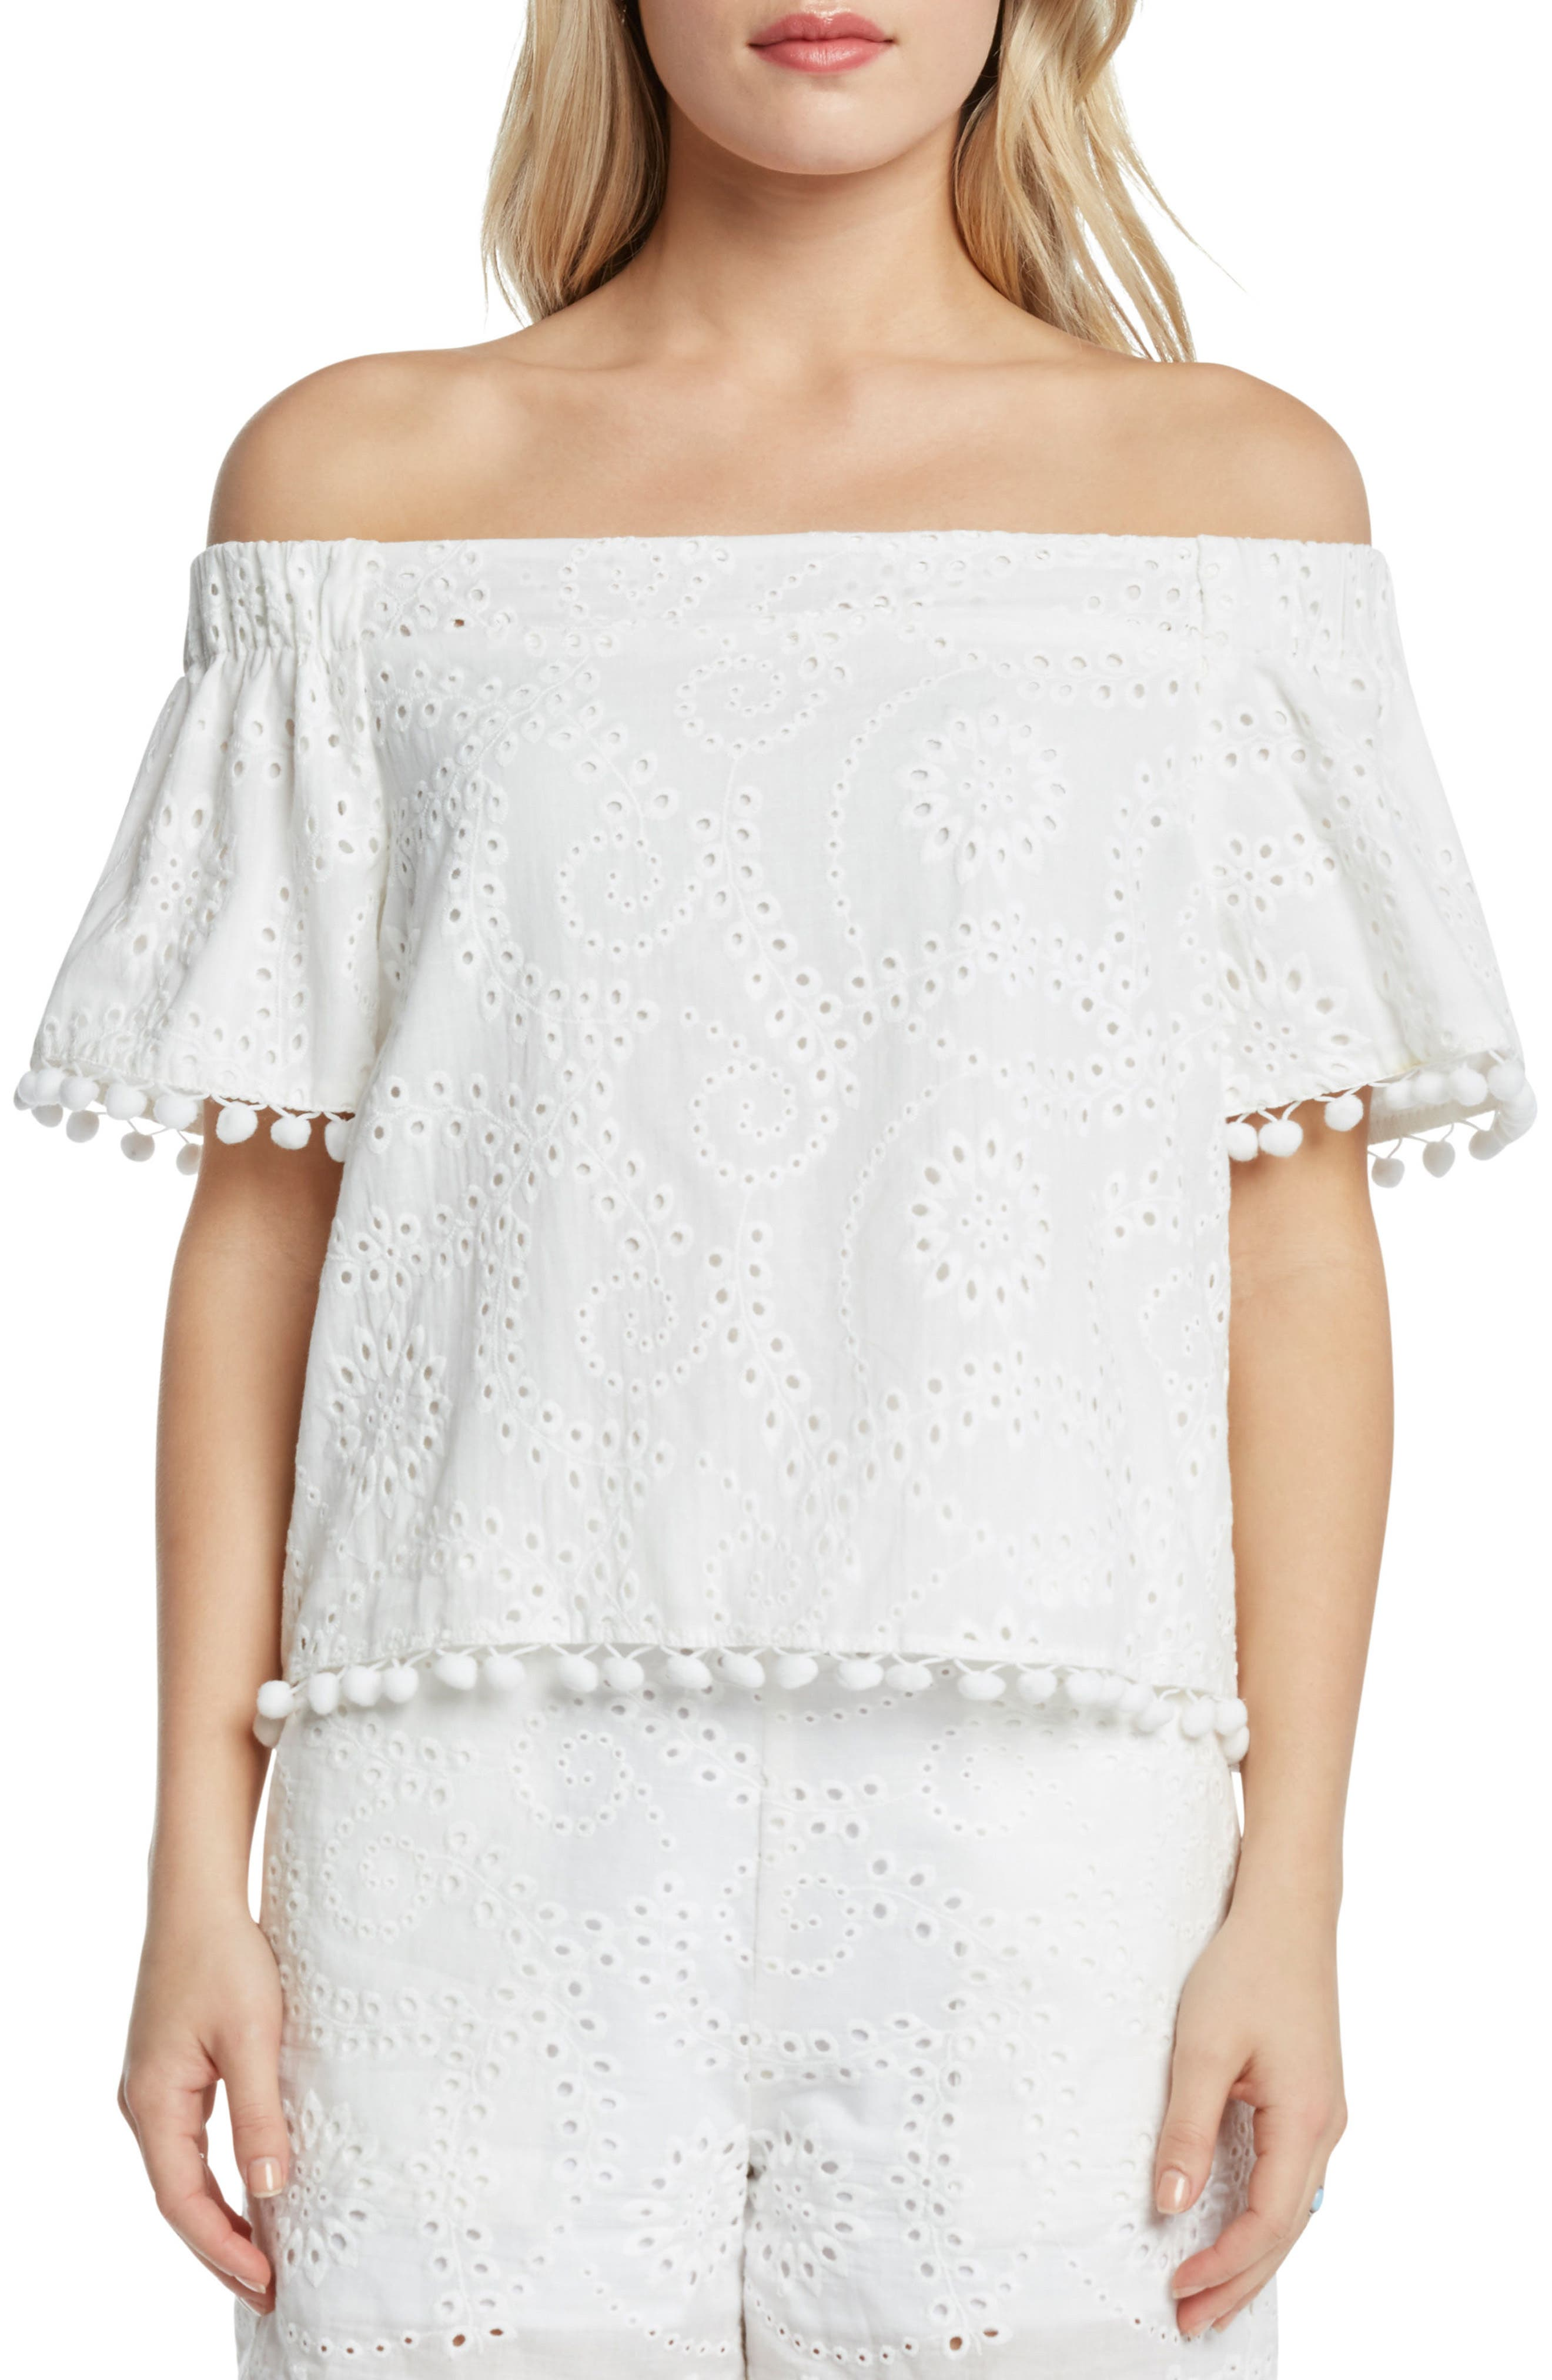 WILLOW & CLAY Off the Shoulder Eyelet Top, Main, color, 106